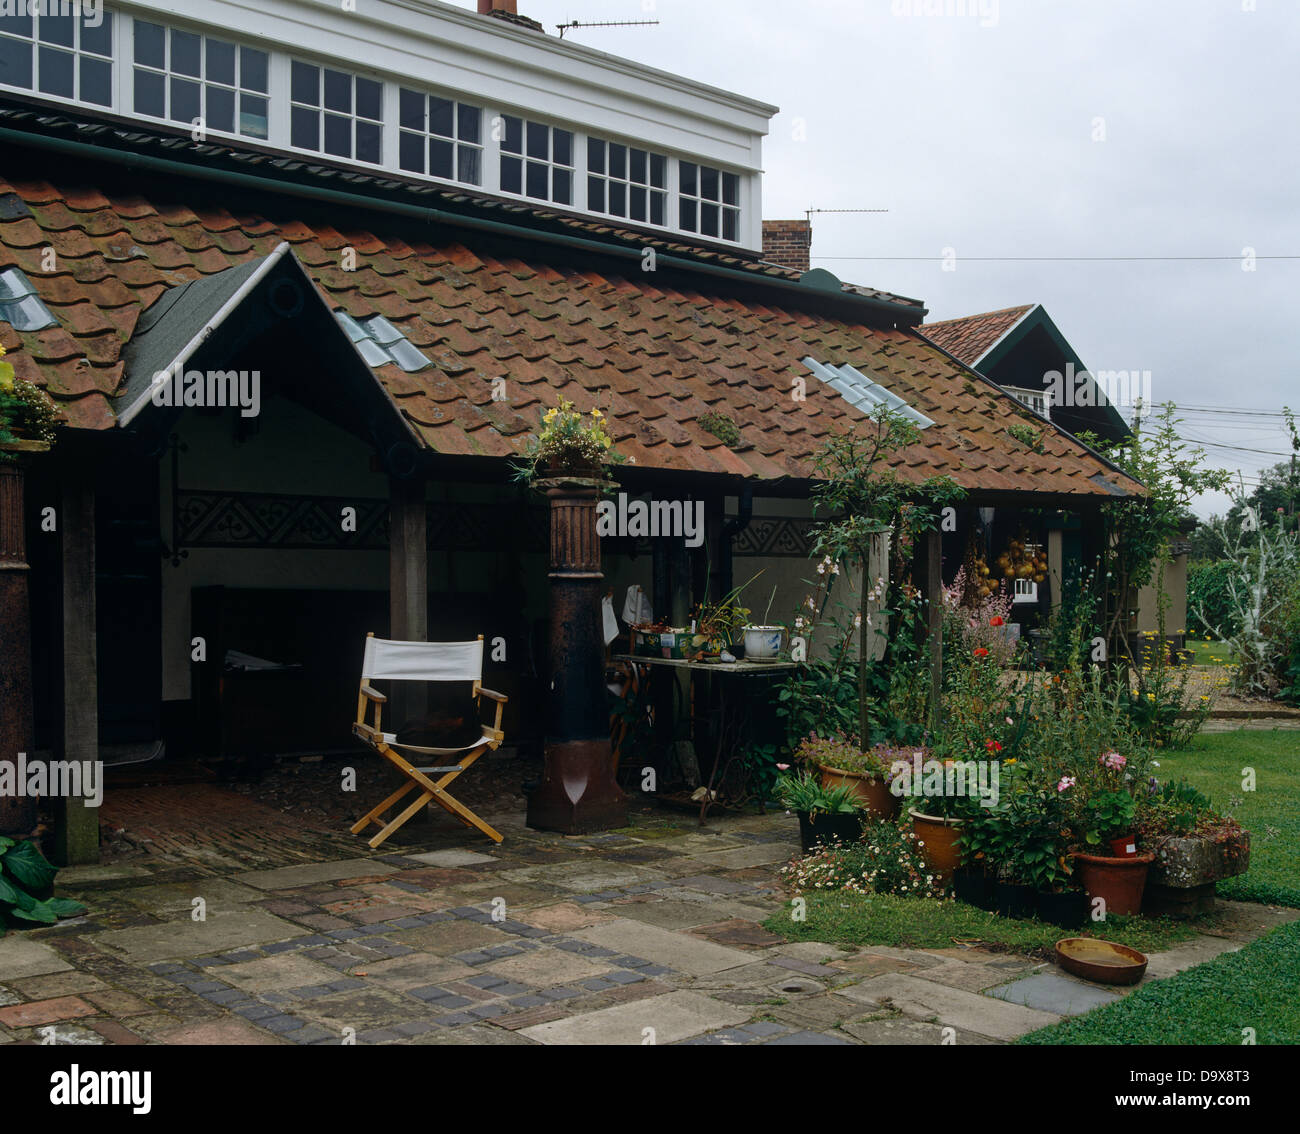 veranda on country house furniture stockfotos veranda on country house furniture bilder alamy. Black Bedroom Furniture Sets. Home Design Ideas